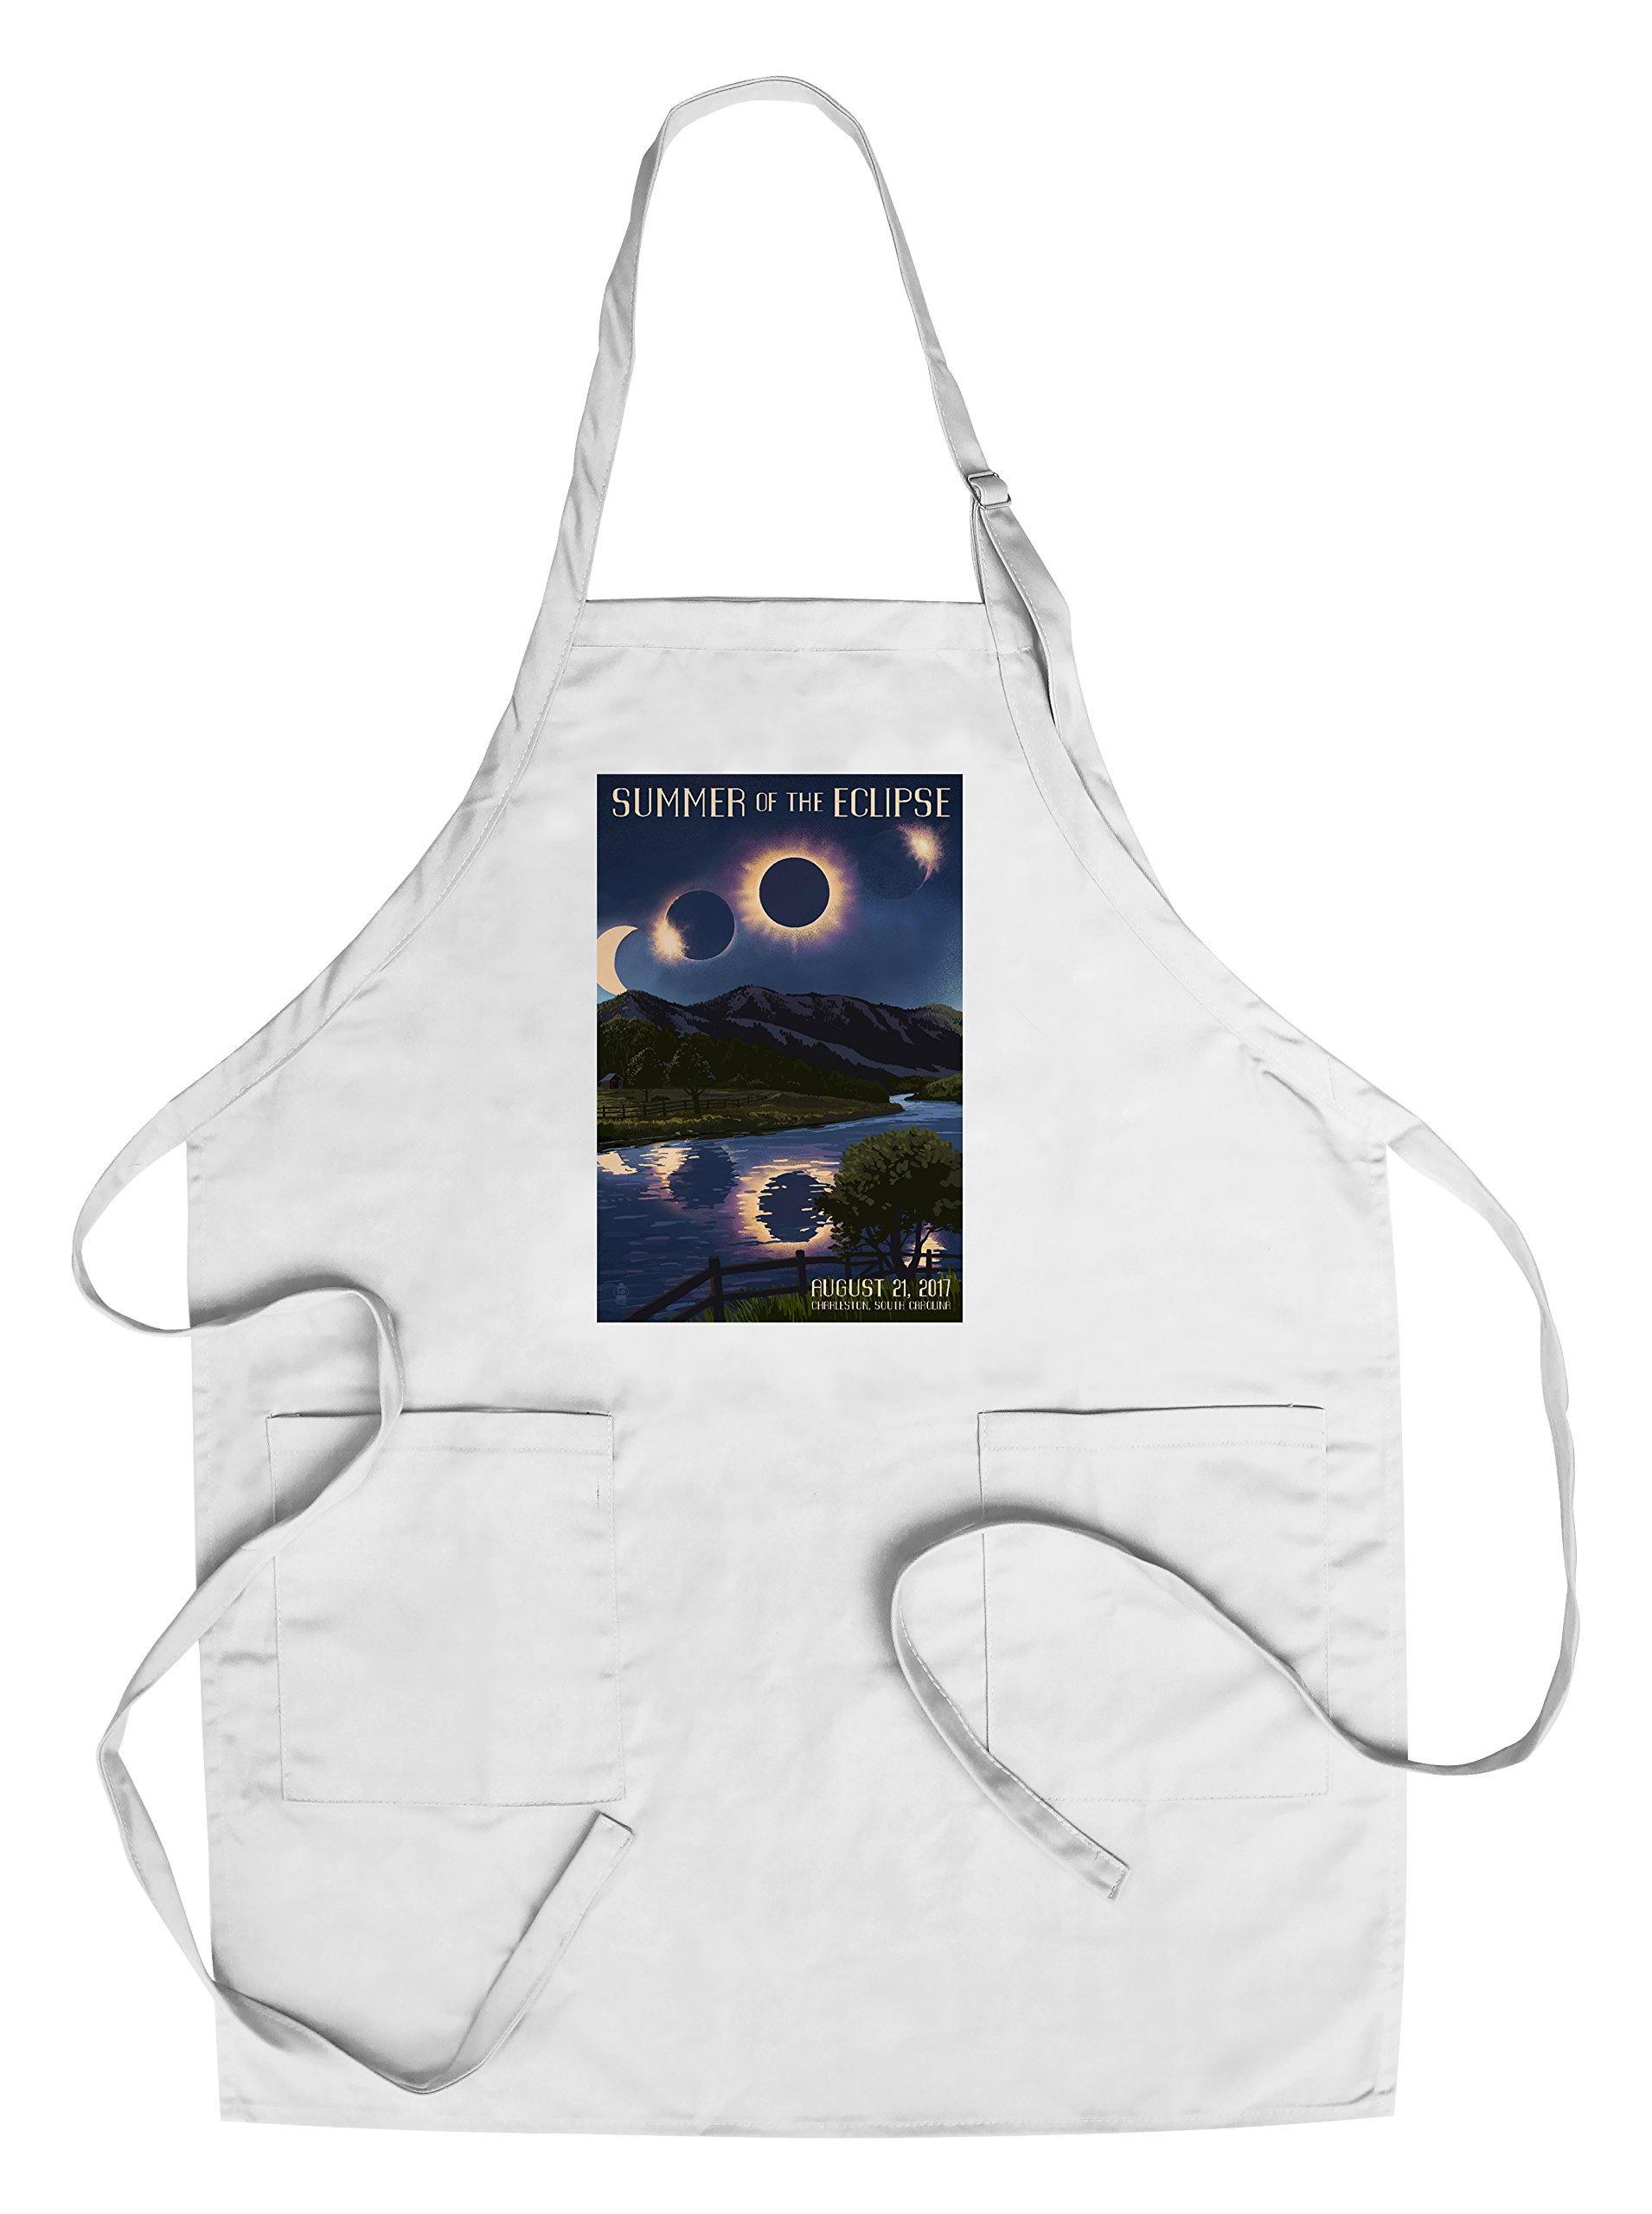 Charleston, South Carolina - Solar Eclipse 2017 - Summer of the Eclipse (Cotton/Polyester Chef's Apron)